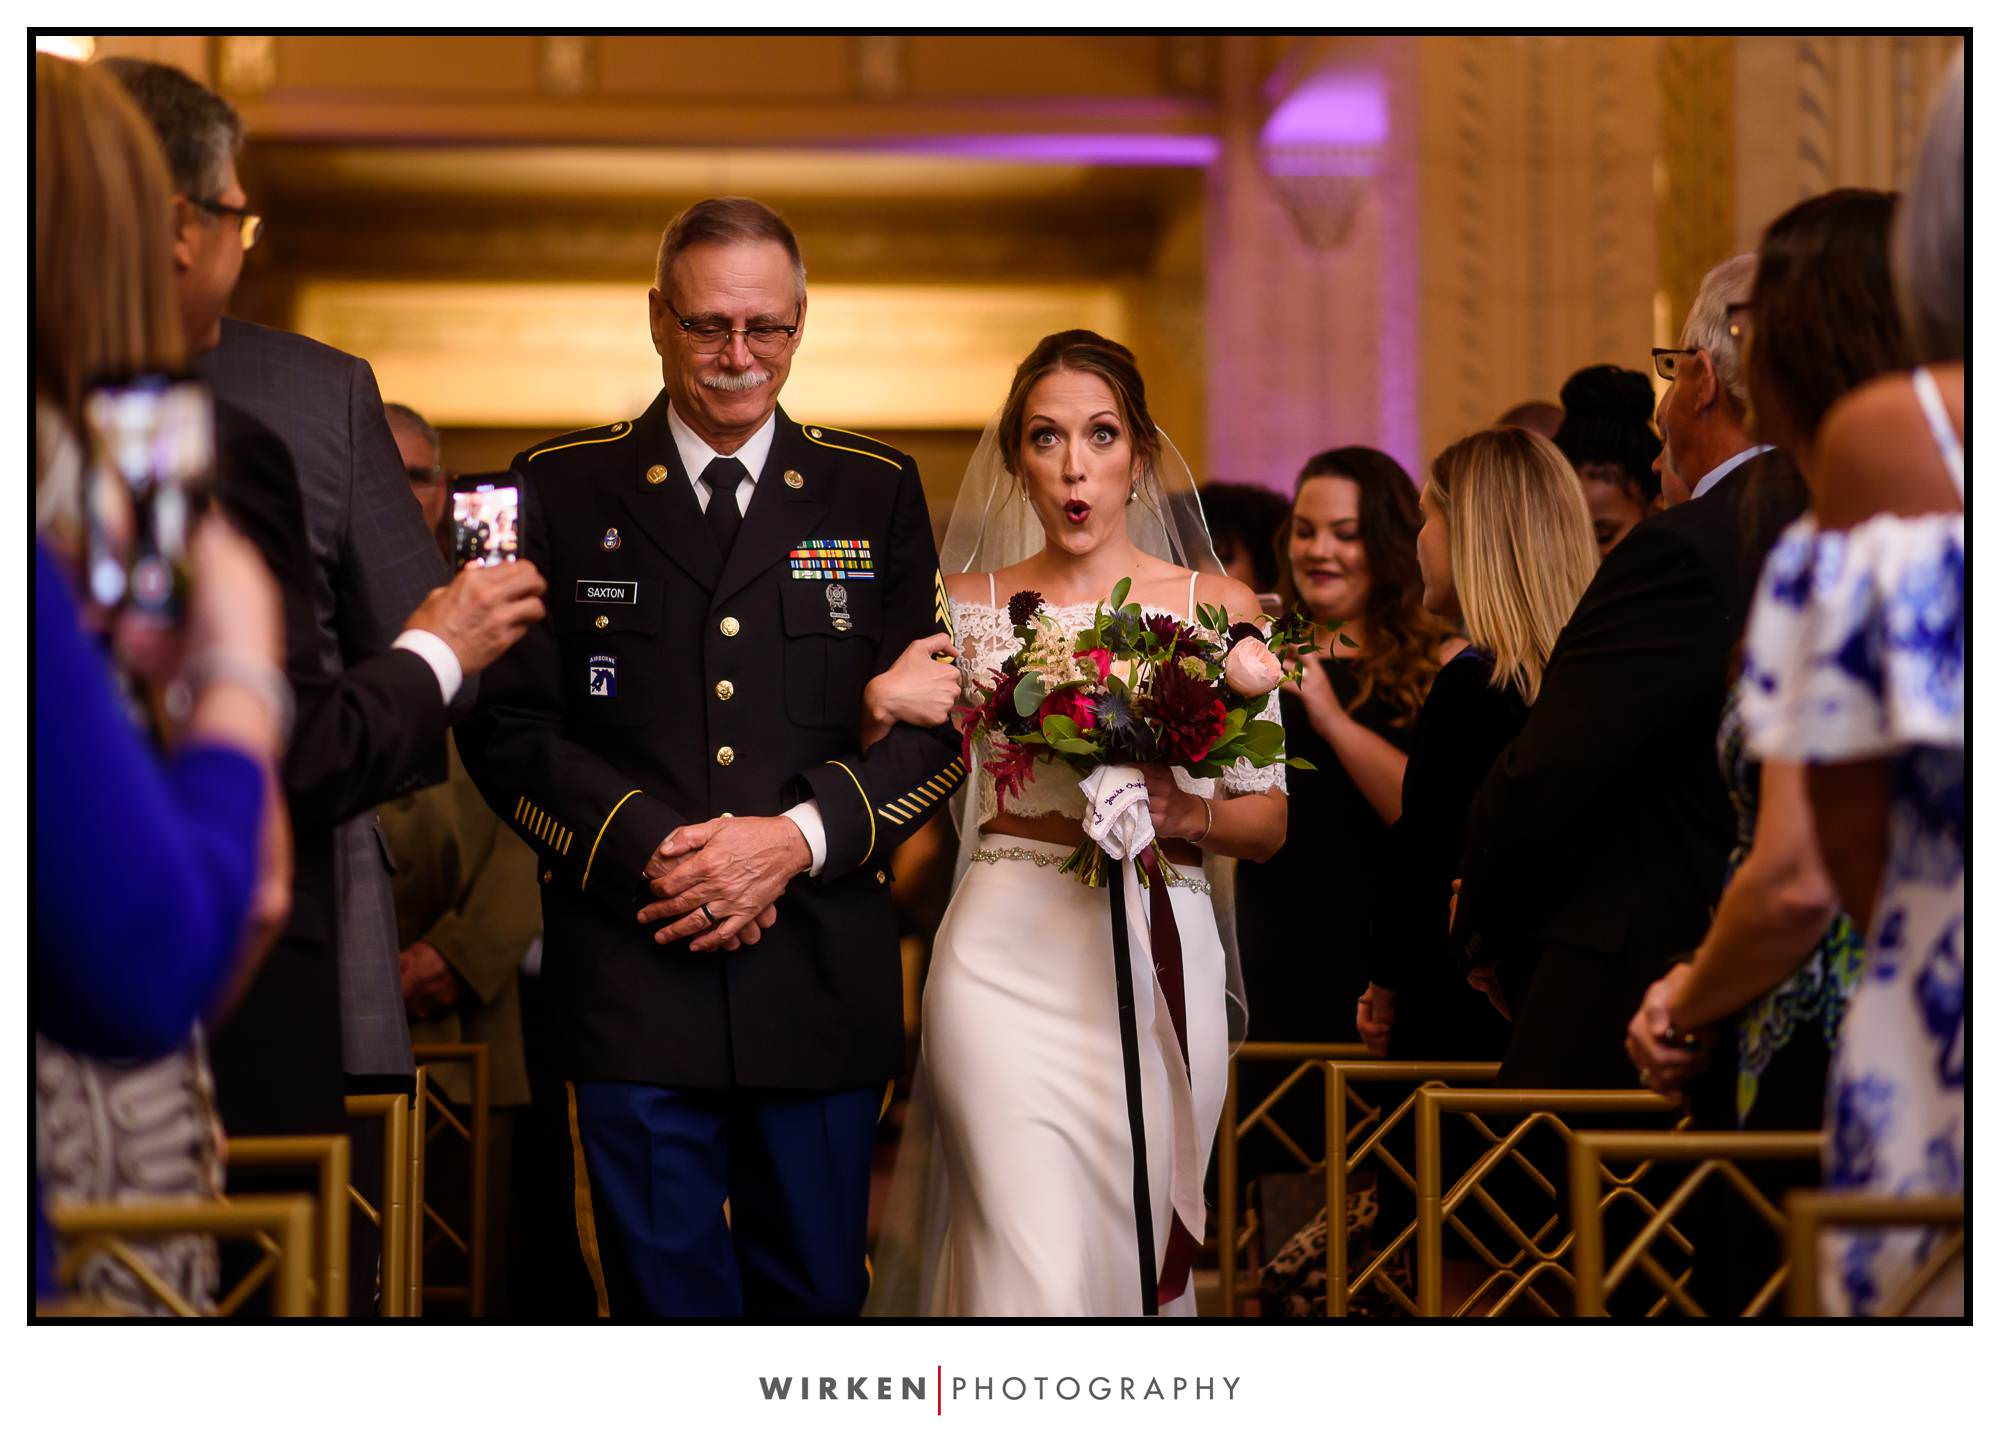 Bride and father walk down the aisle at the Grand Hall in Kansas City